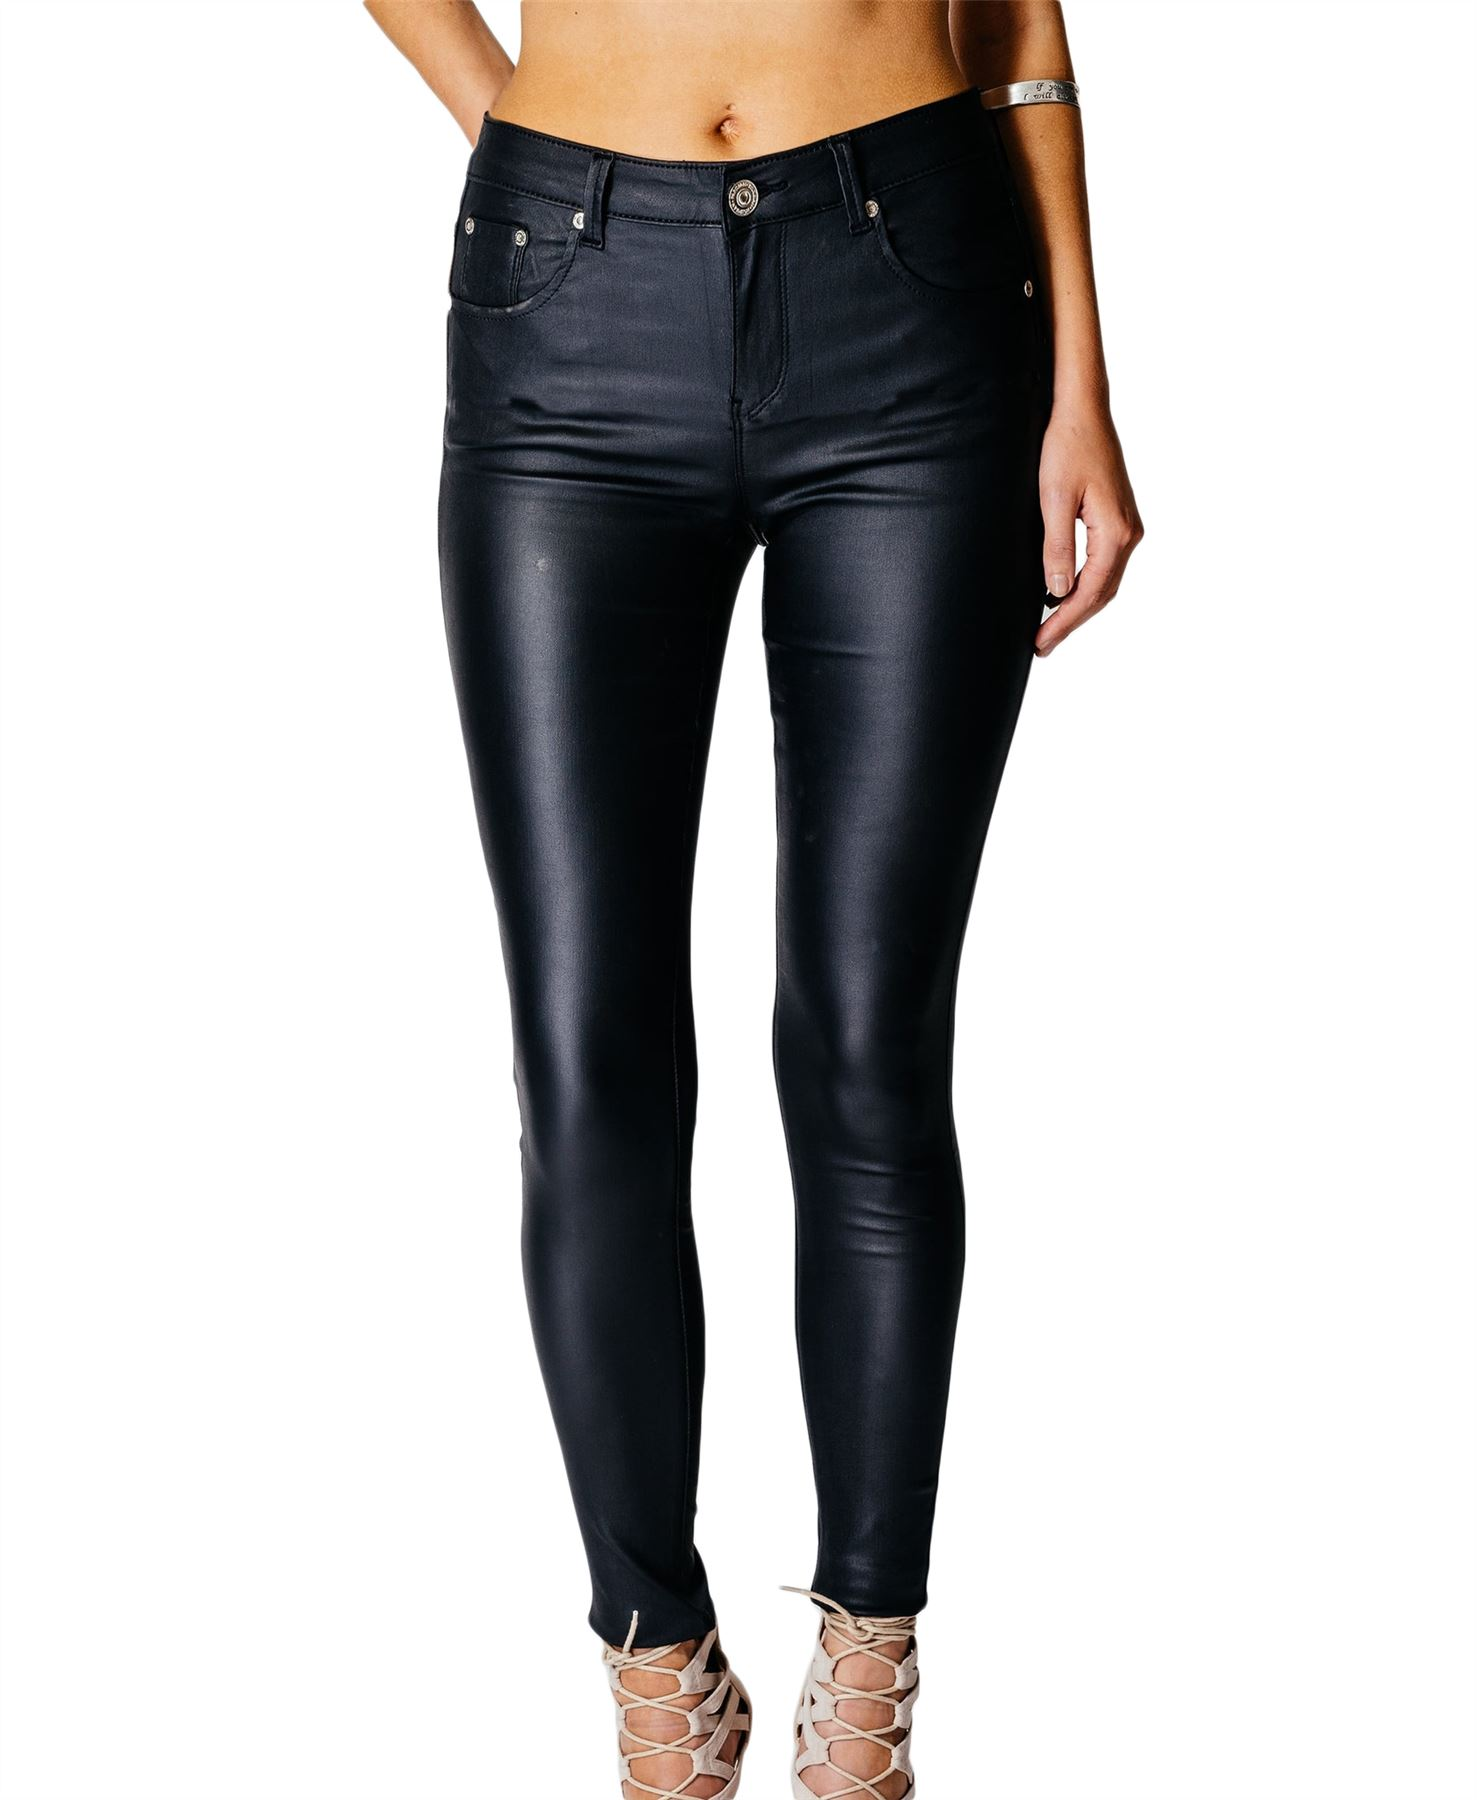 Womens High Waisted Rise Wet Look PU Plus Size Leather ...